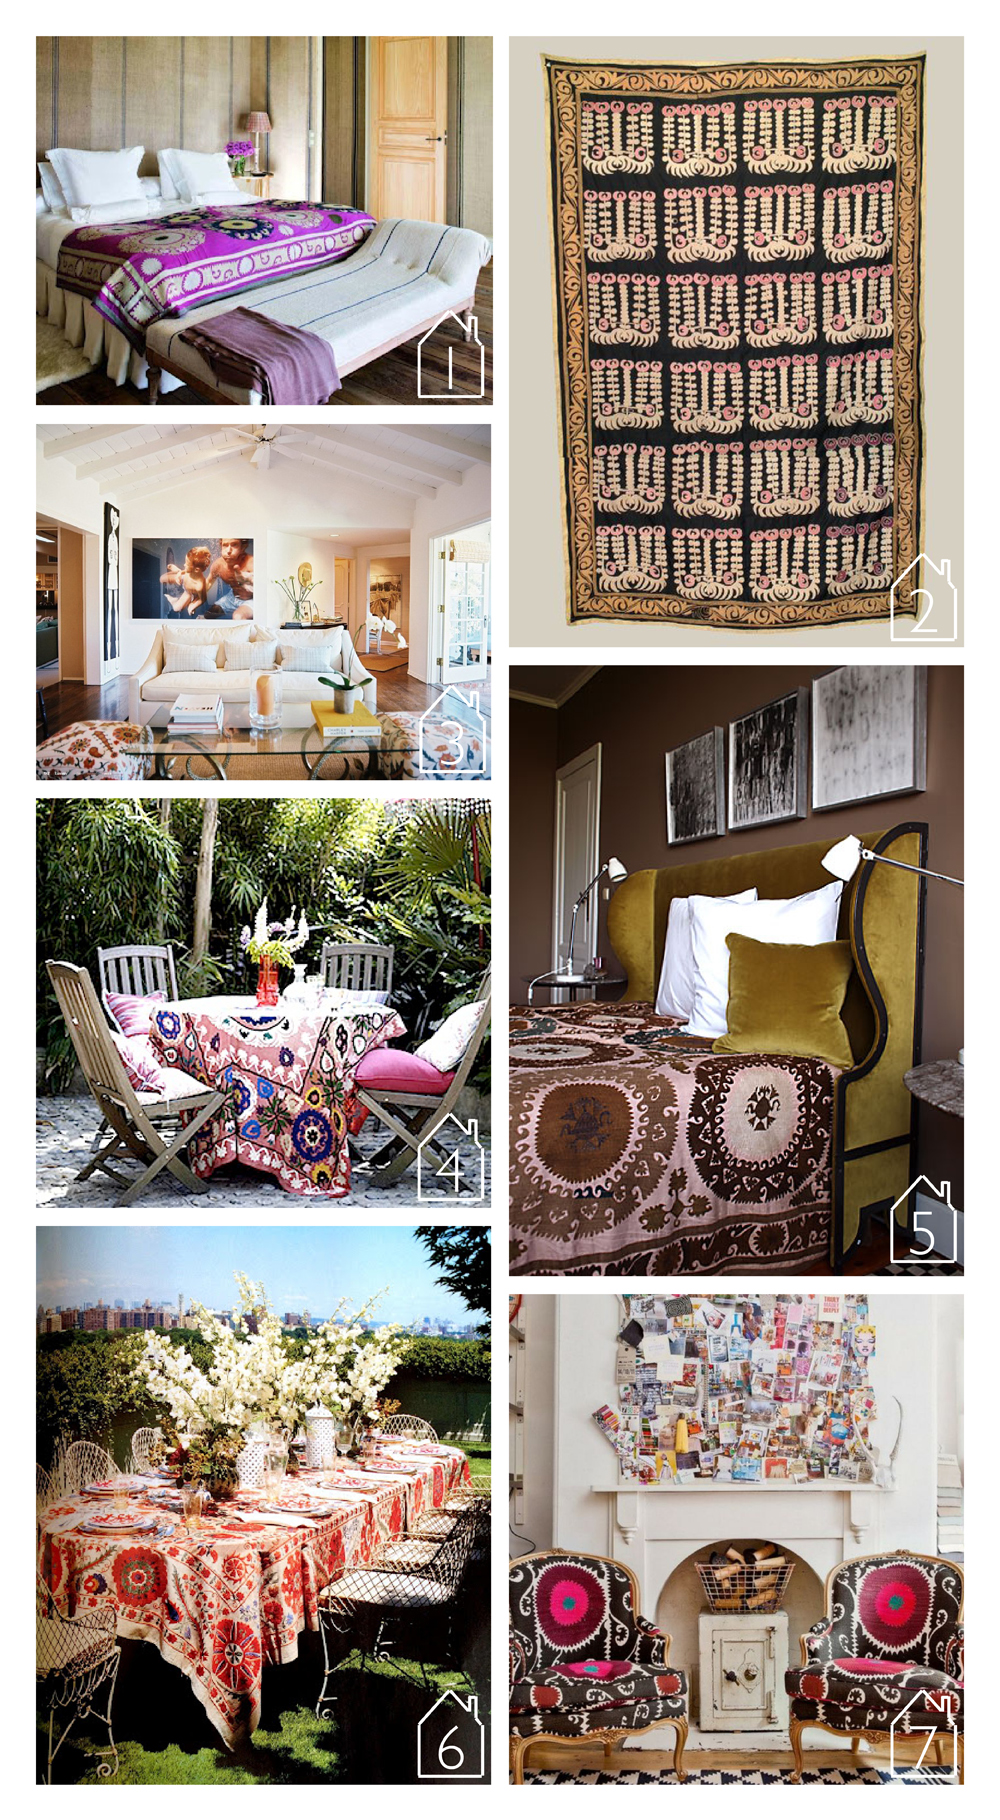 1. via  style design life   2. via  keep feeling fascination  3. home of Lulu DK founder via her blog  trail of inspiration  4. via  City Sage   5. via  Casa Midy   6. source unknown  7. via  nomad luxuries